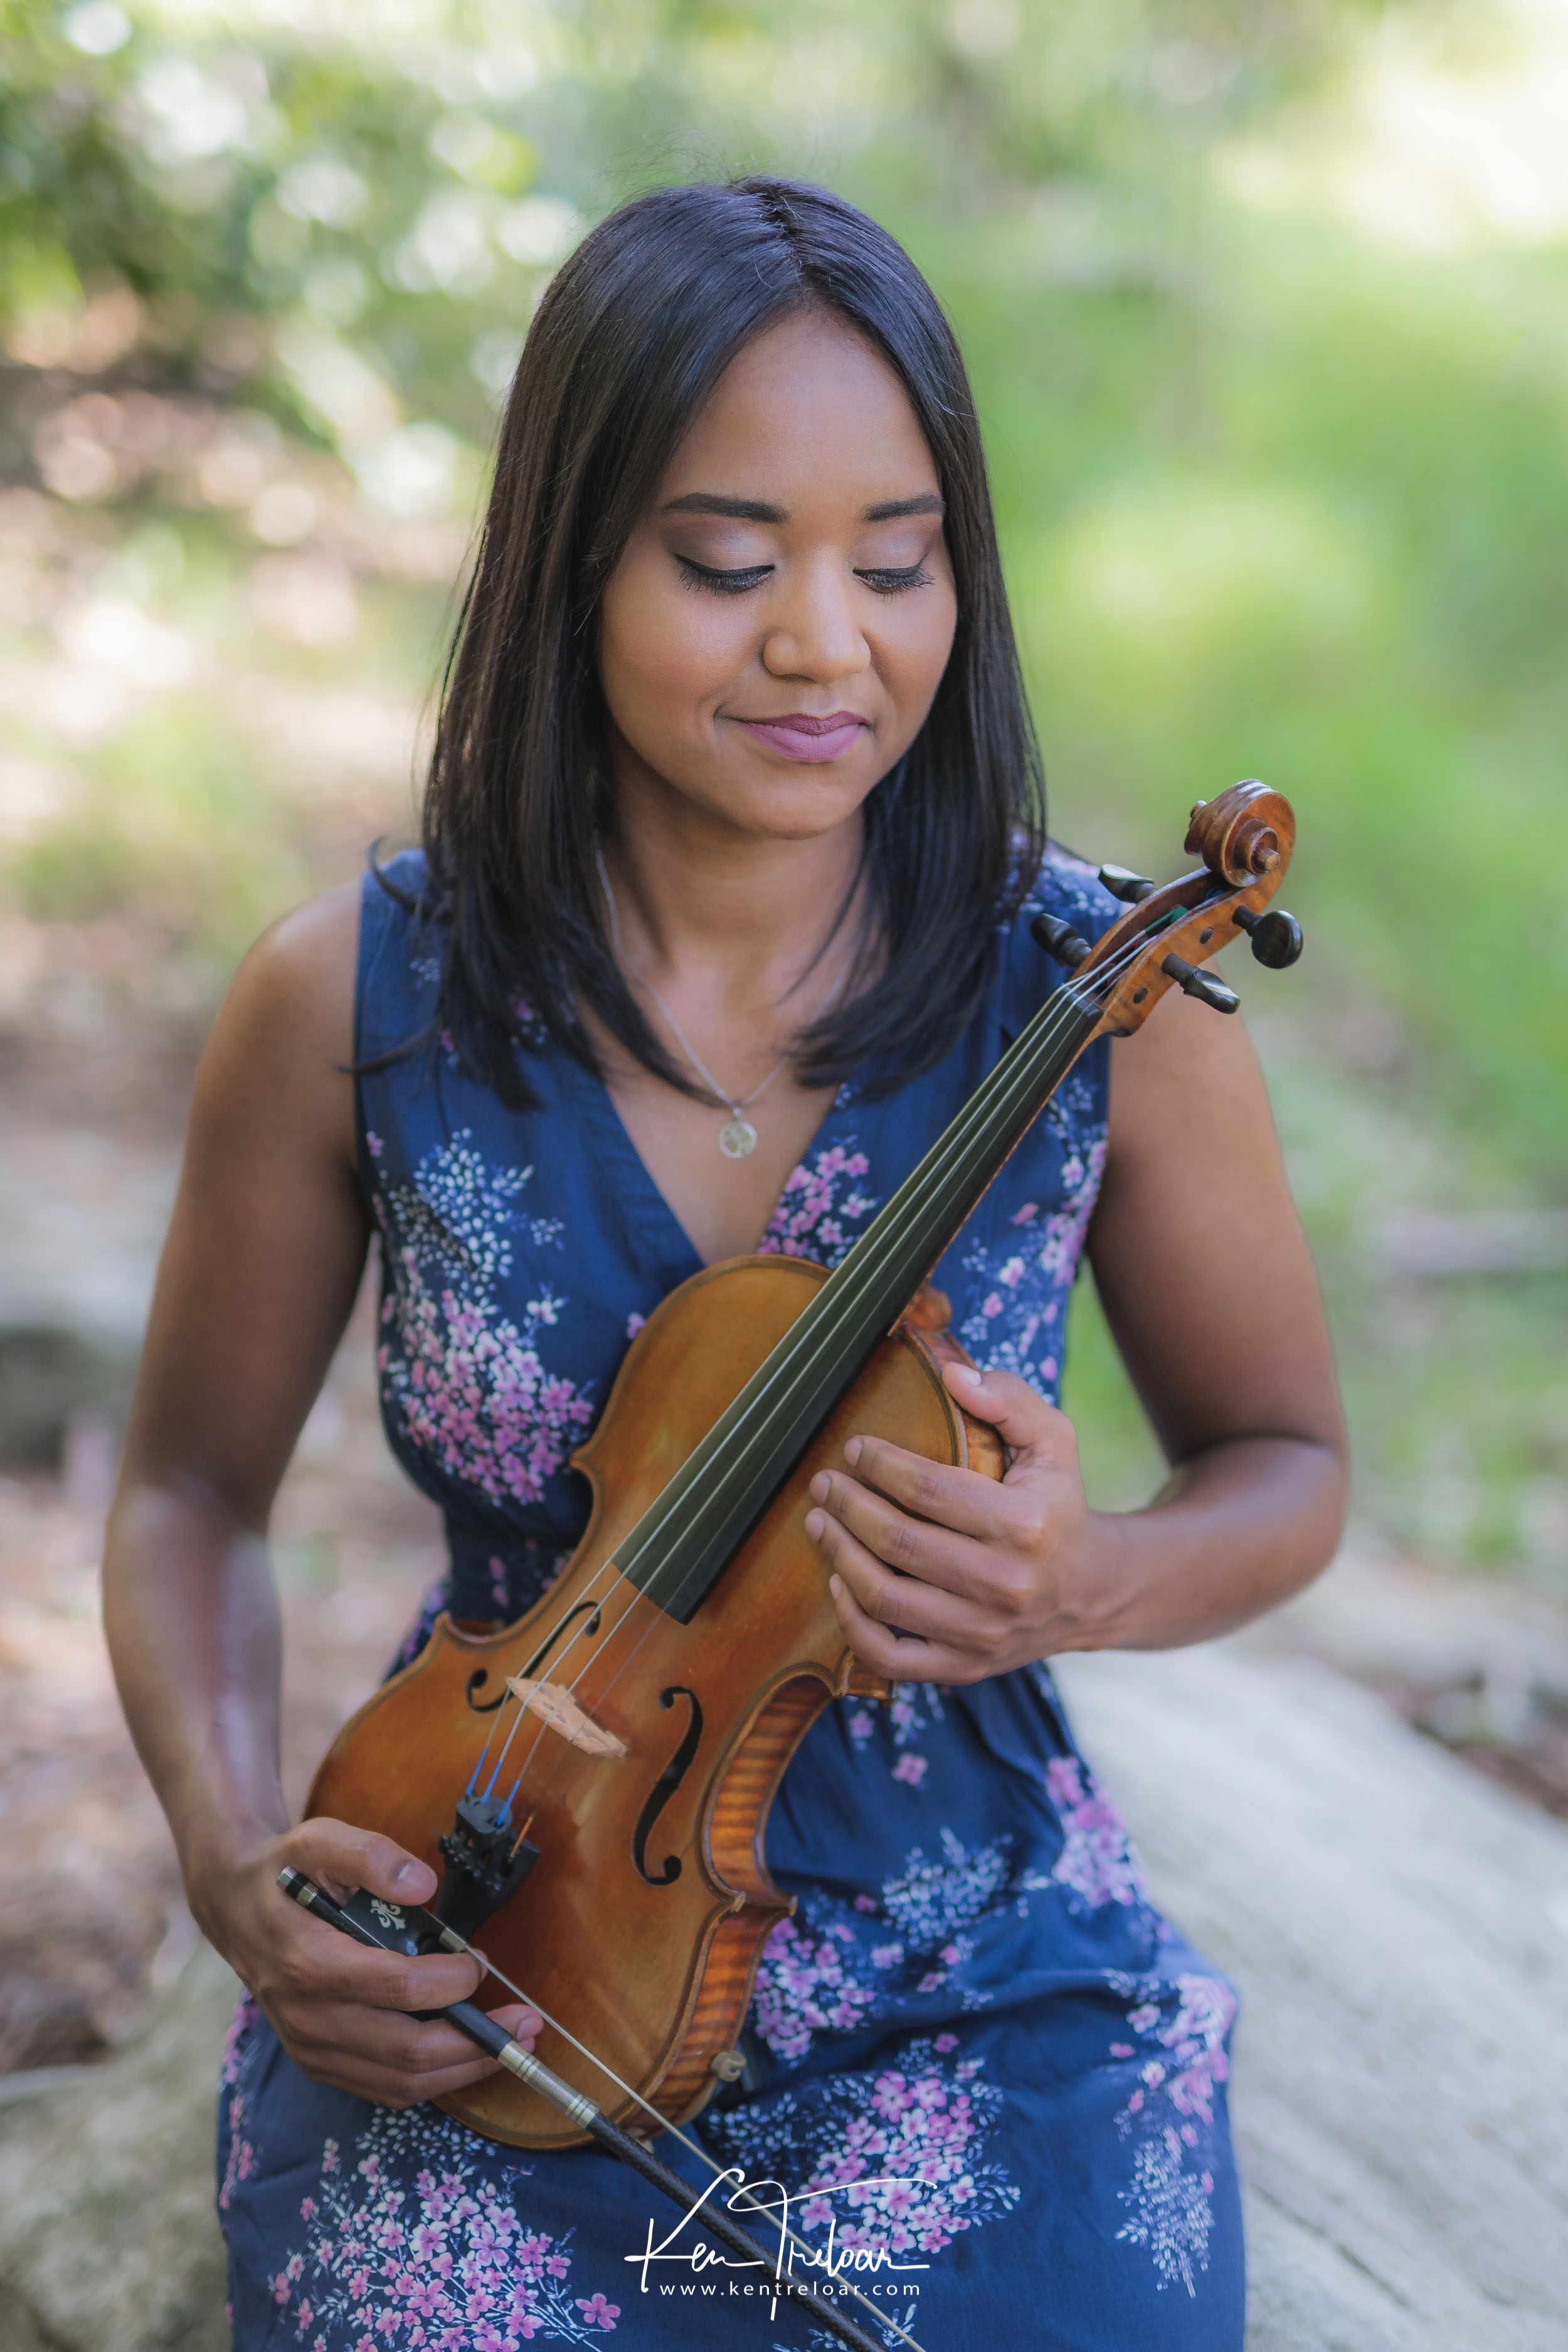 Ken Treloar Photography - Dec 2018 - Violin Woodland Forest Natural Light Portrait Photography - Cape Town-11.jpg